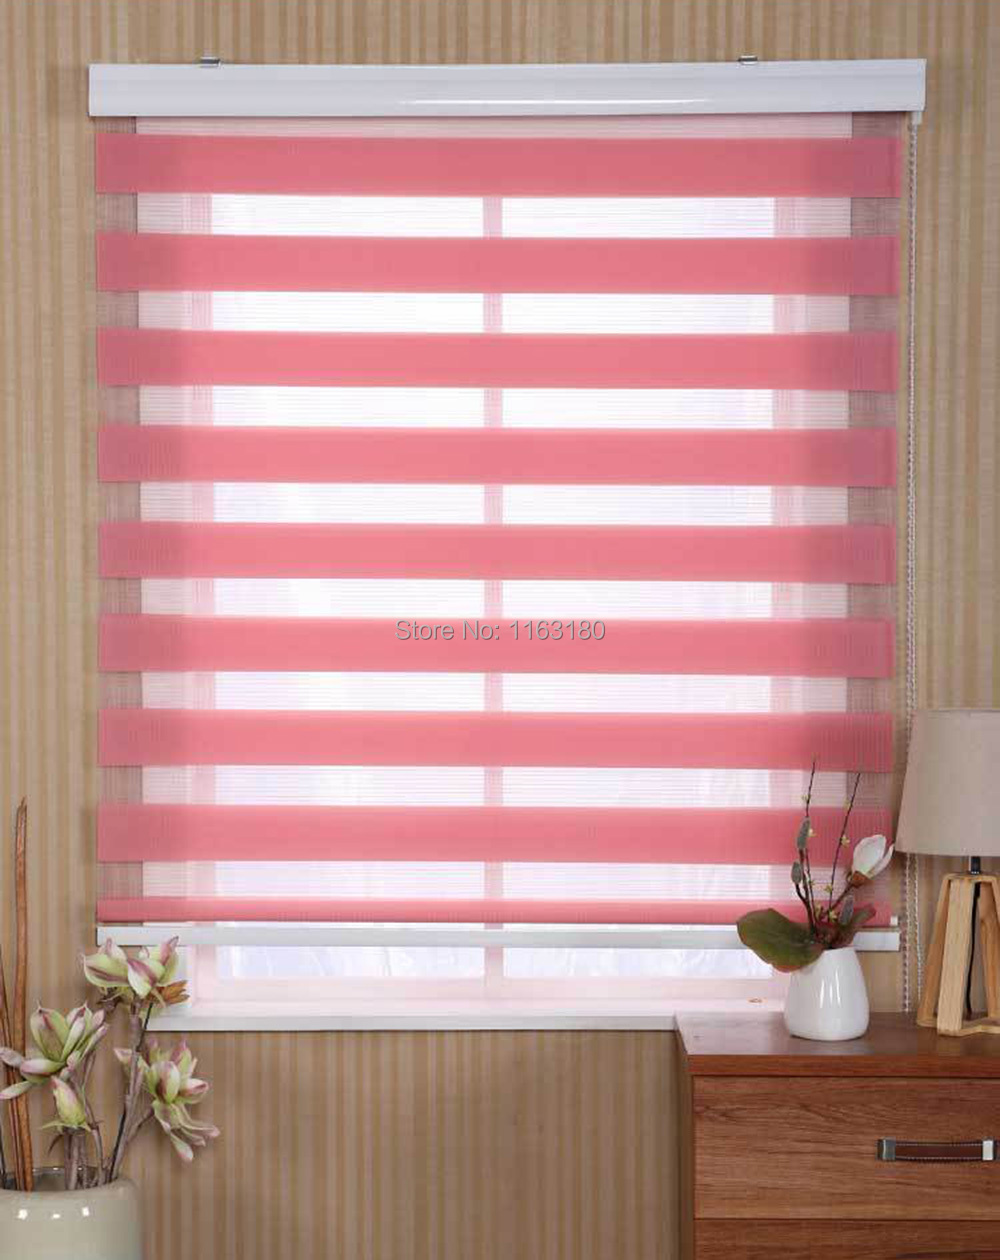 Customized Size Zebra Blind Double Layer Roller Blind Easy To Install Shutters Free Shipping